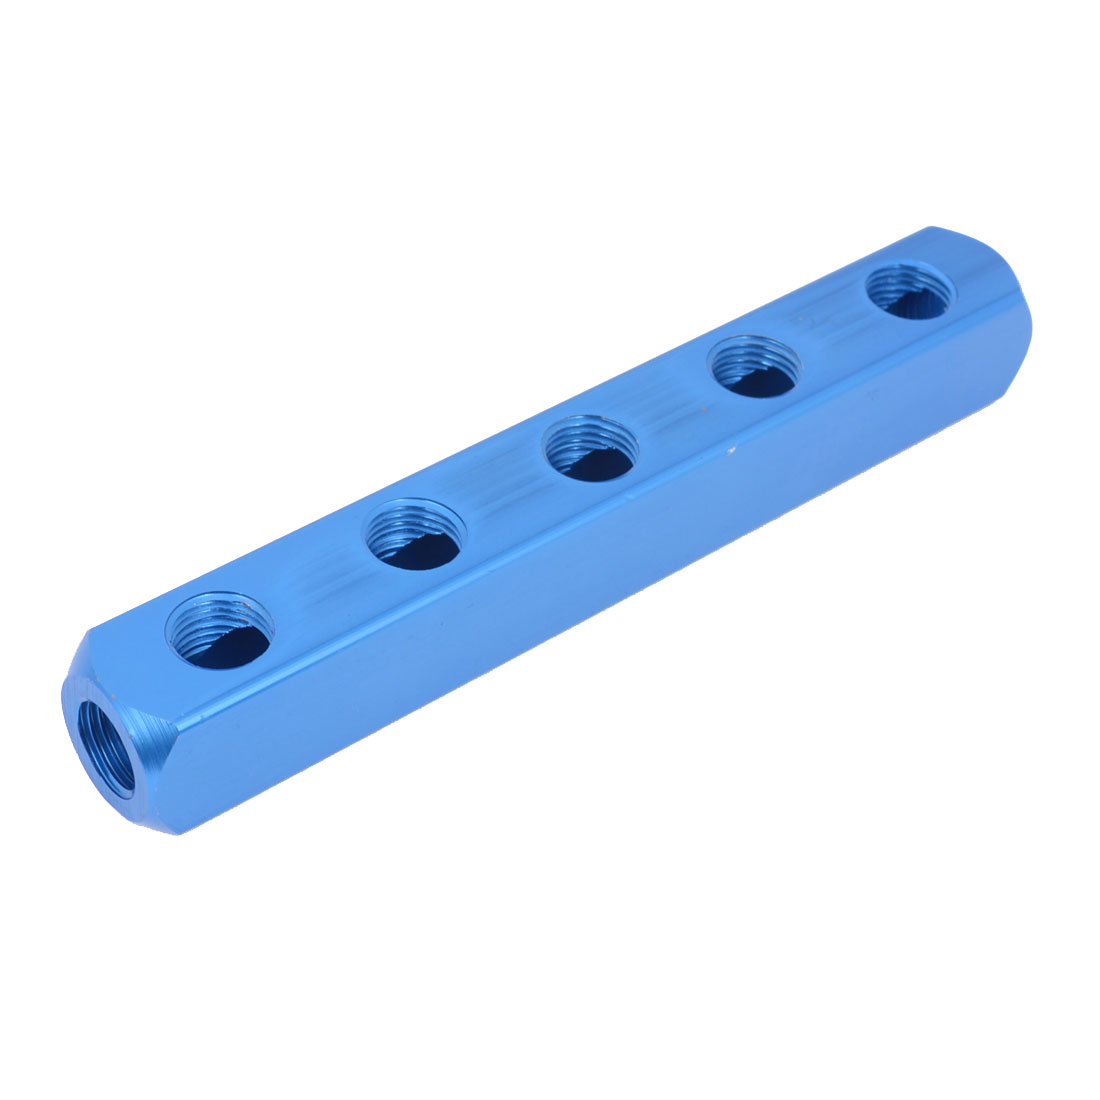 Pneumatic Cylinder 5 Way 8 Ports Aluminum Air Manifold Block Splitter Blue